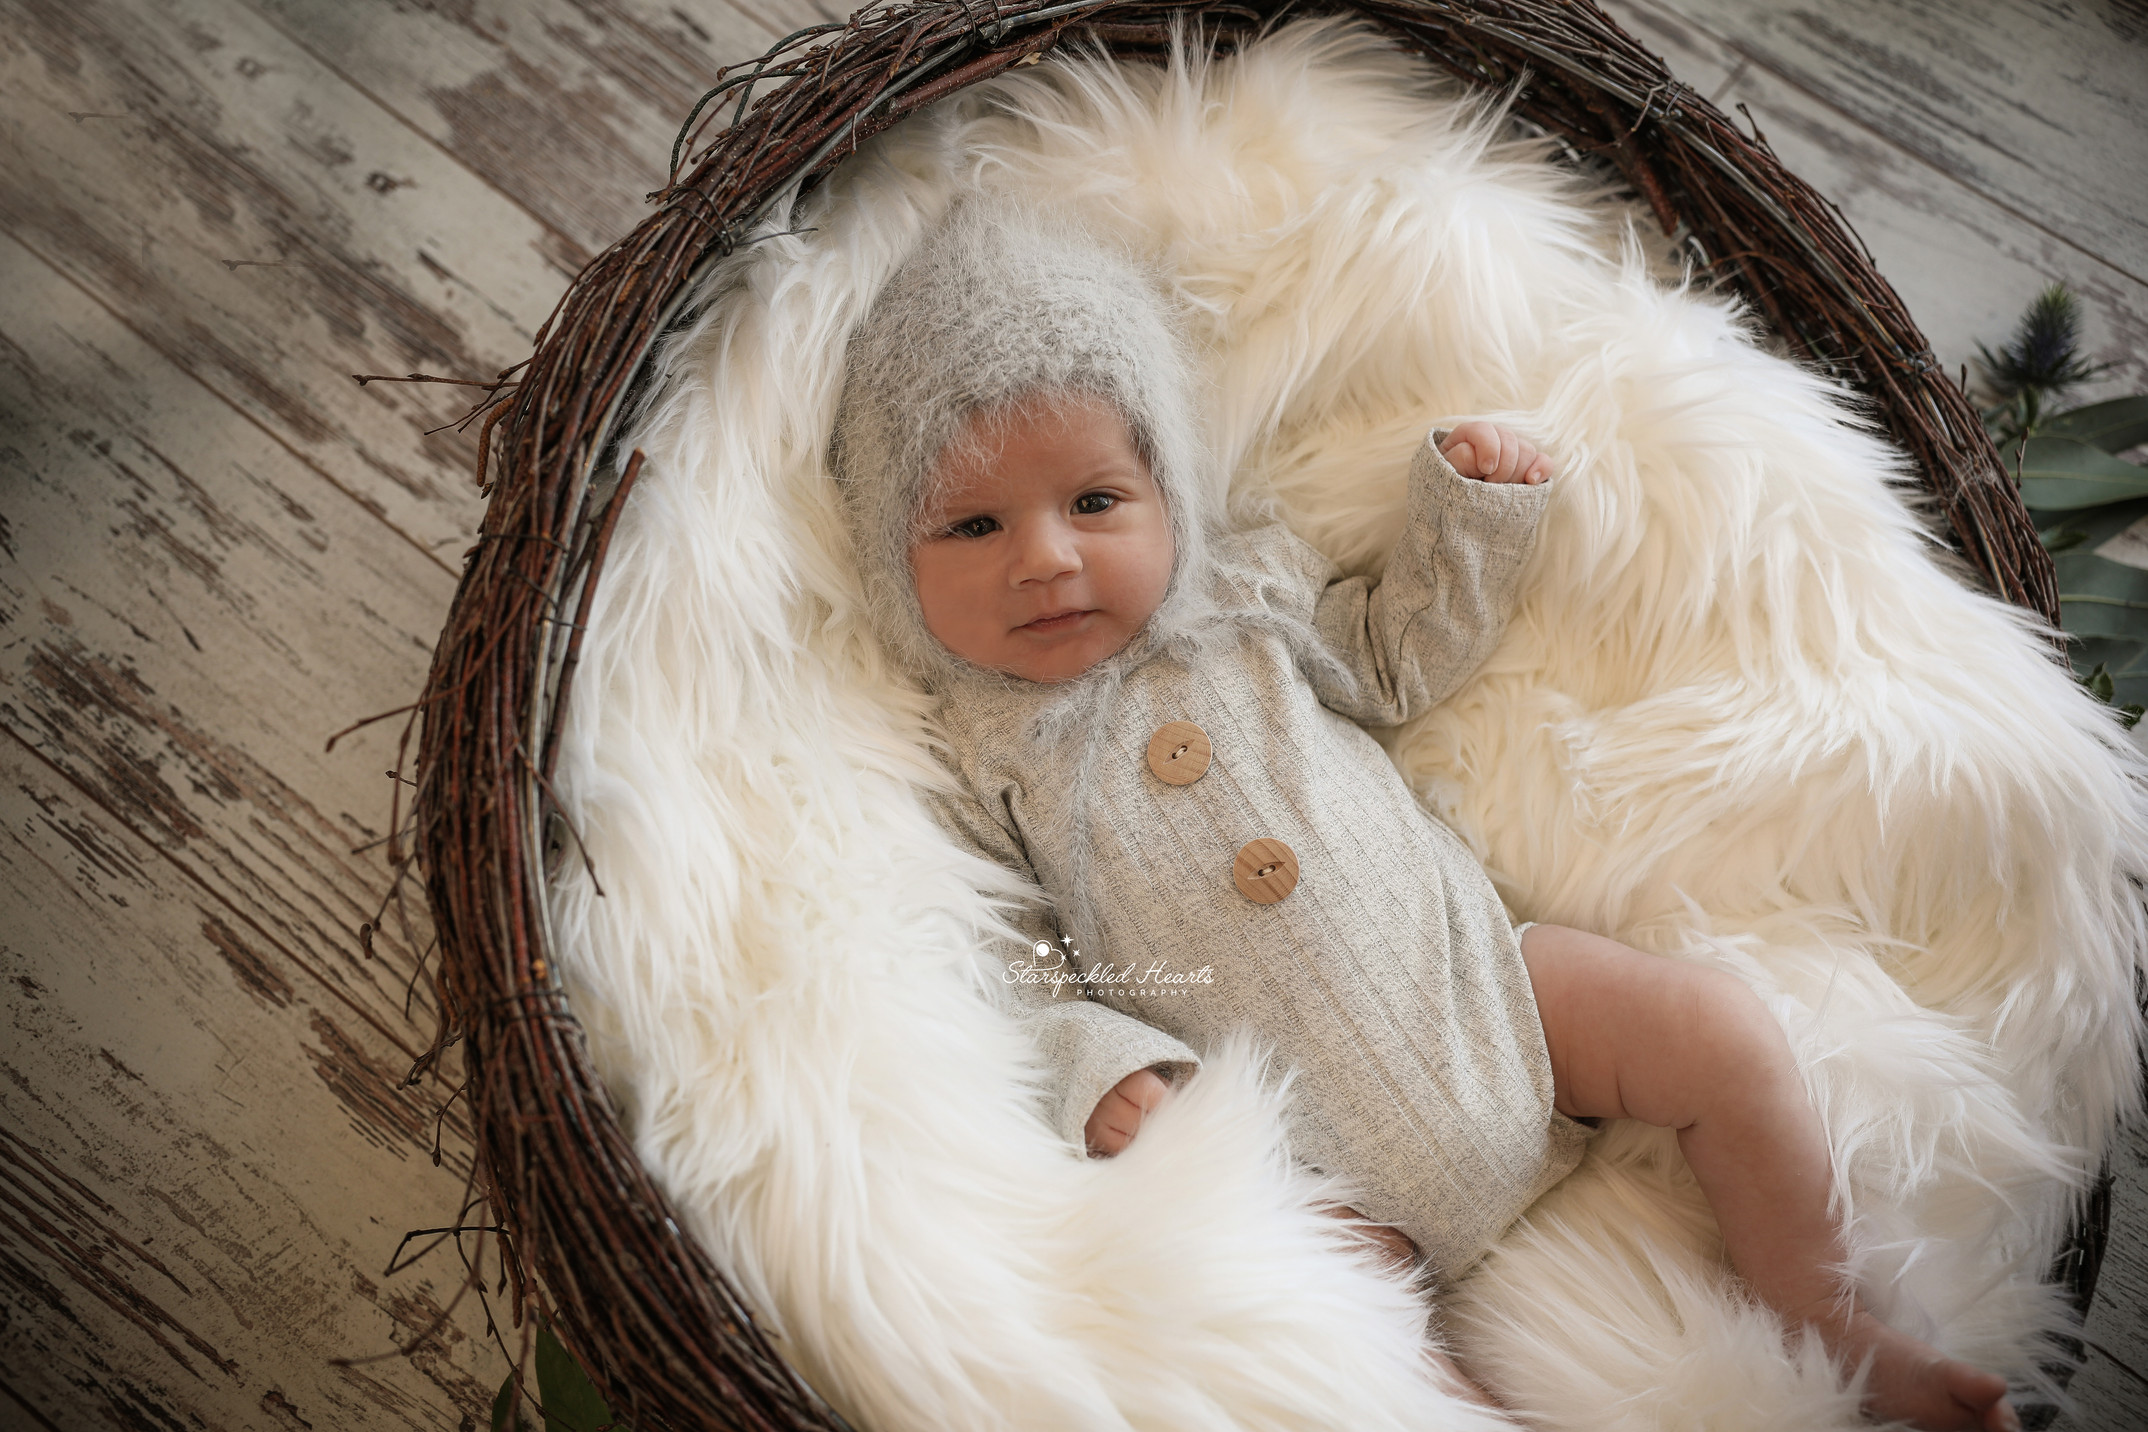 baby boy lying on a white fluffy rug in a wicker basket, wearing a grey romper and grey hat